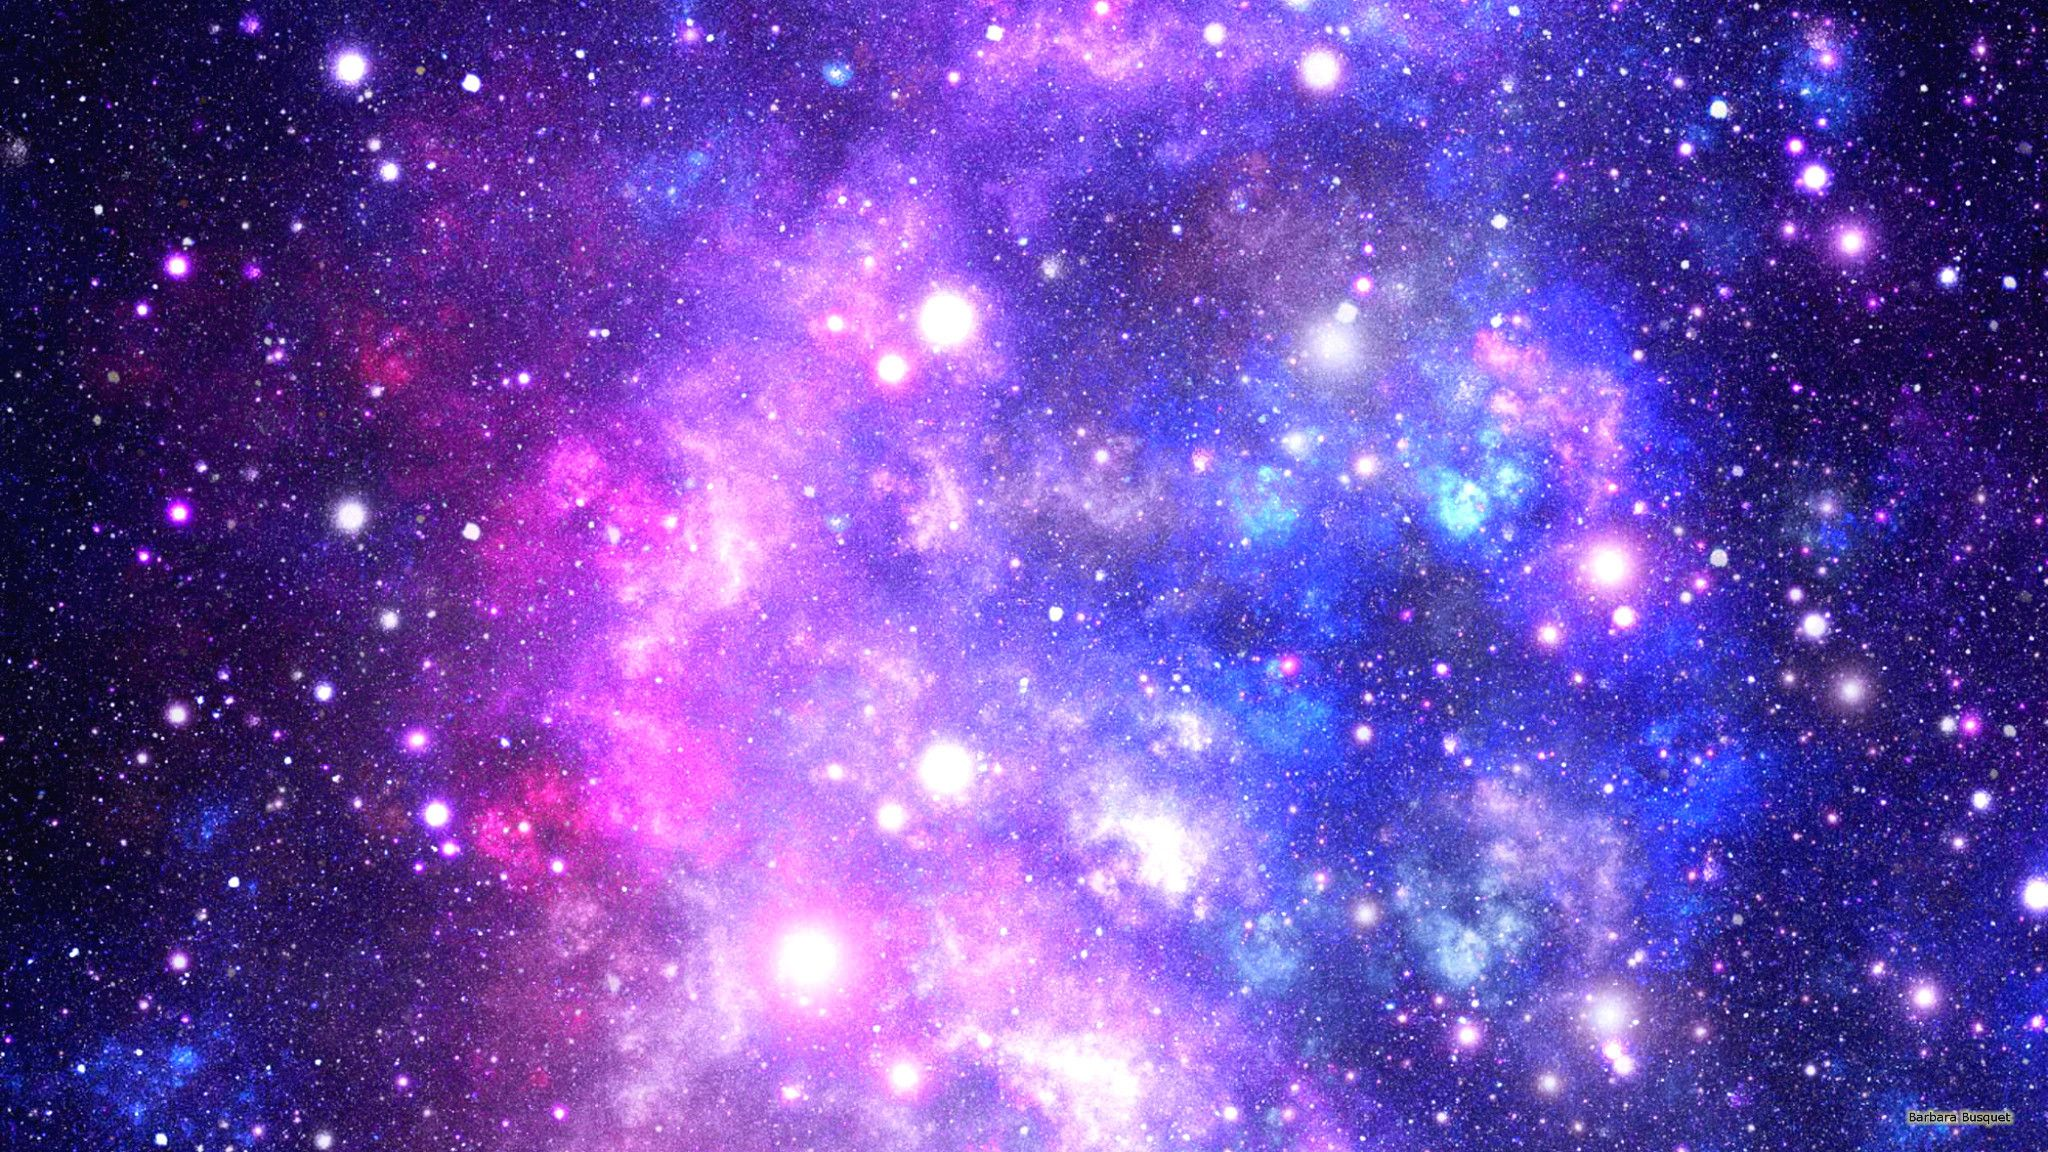 Pastel galaxy wallpapers top free pastel galaxy - Colorful galaxy wallpaper ...